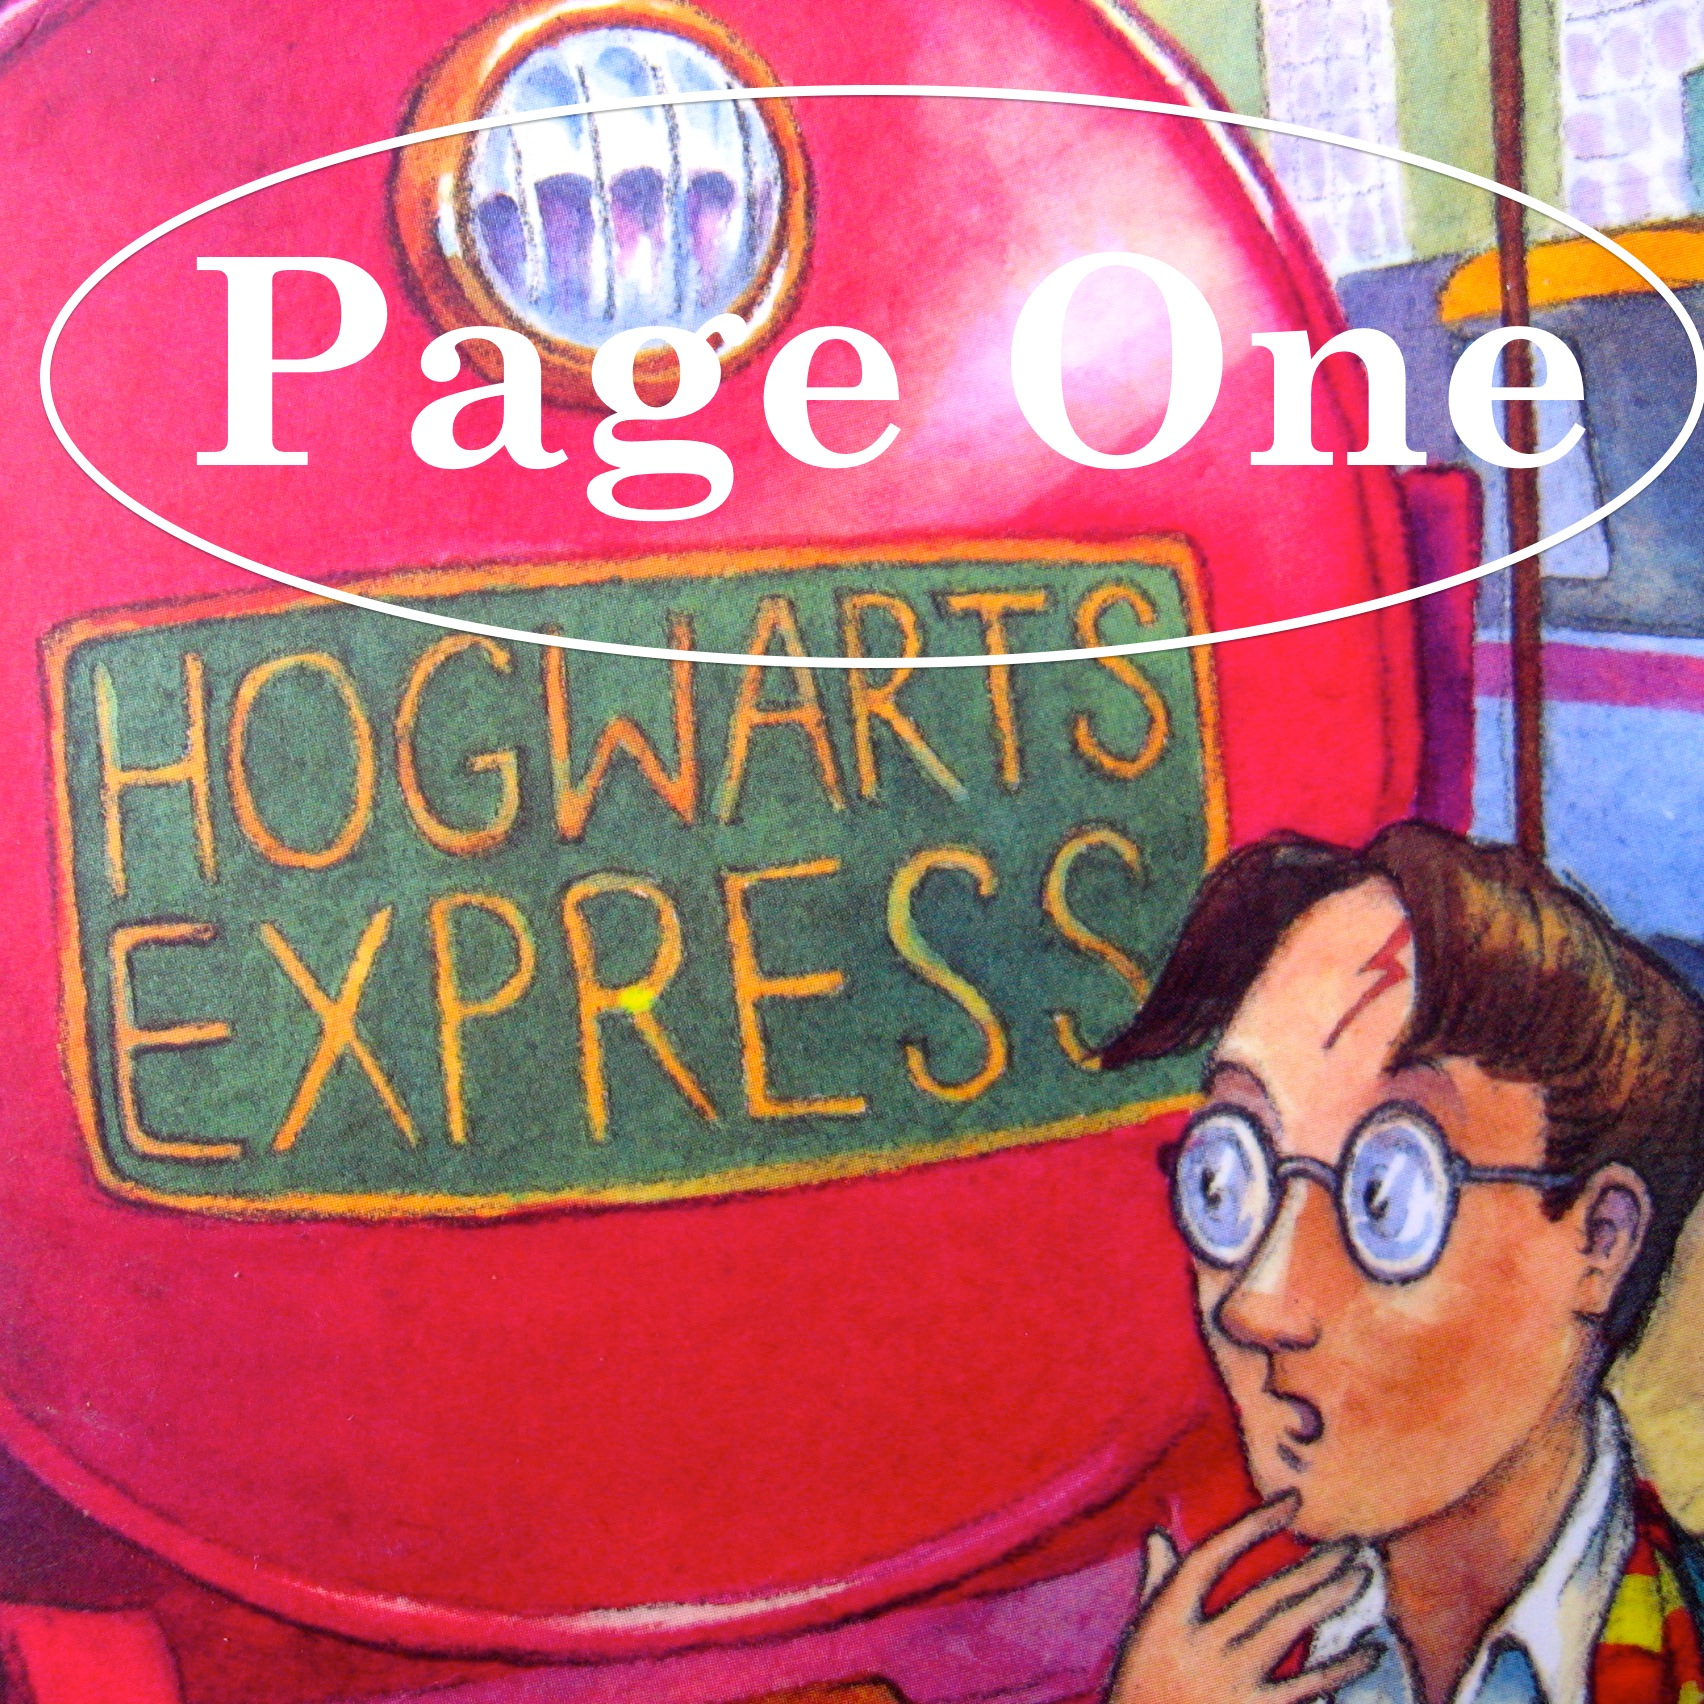 Episode image is a detail from the cover of  Harry Potter And The Philosopher's Stone  by J.K. Rowling, published in 1997 by Bloomsbury Publishing; cover illustration © Thomas Taylor.